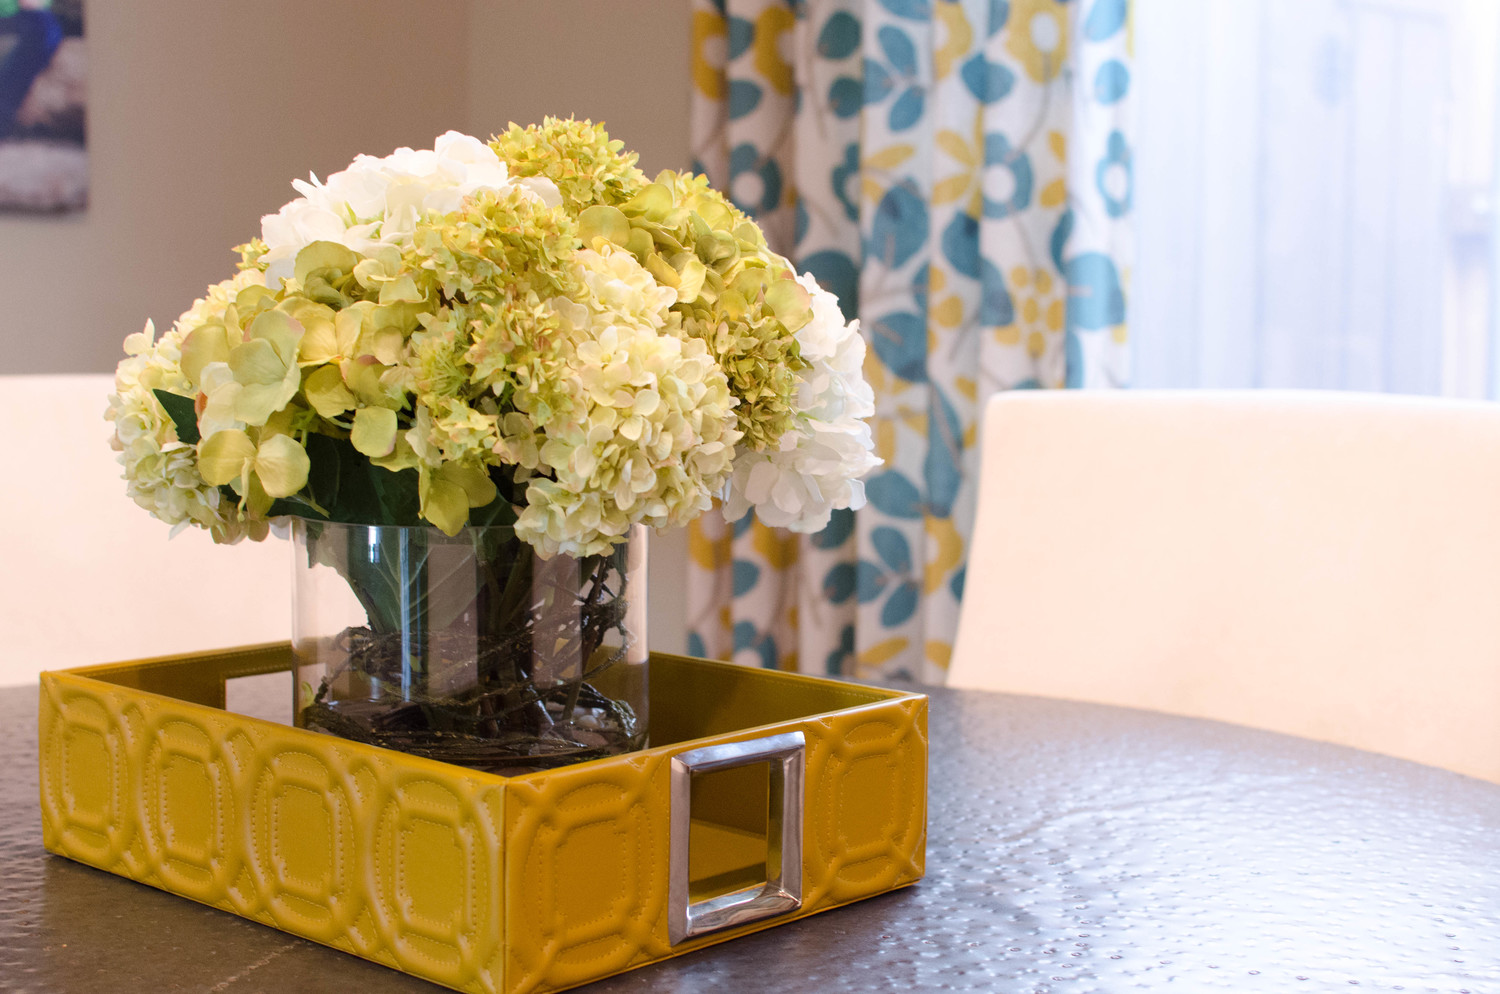 Yellow leather tray with flowers